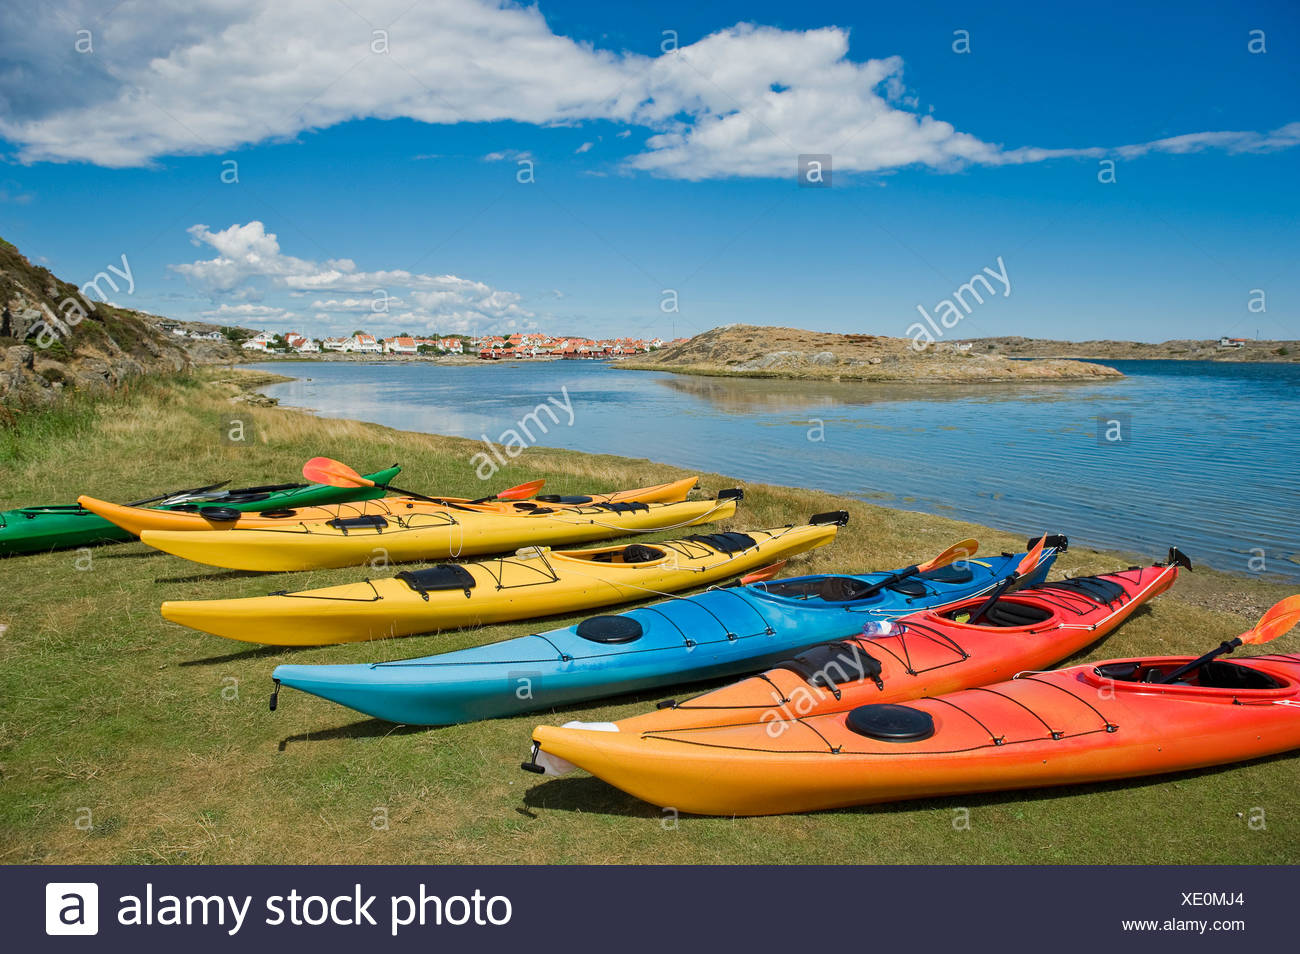 Several kayaks on grass by the calm sea below clouds in the sky Stock Photo